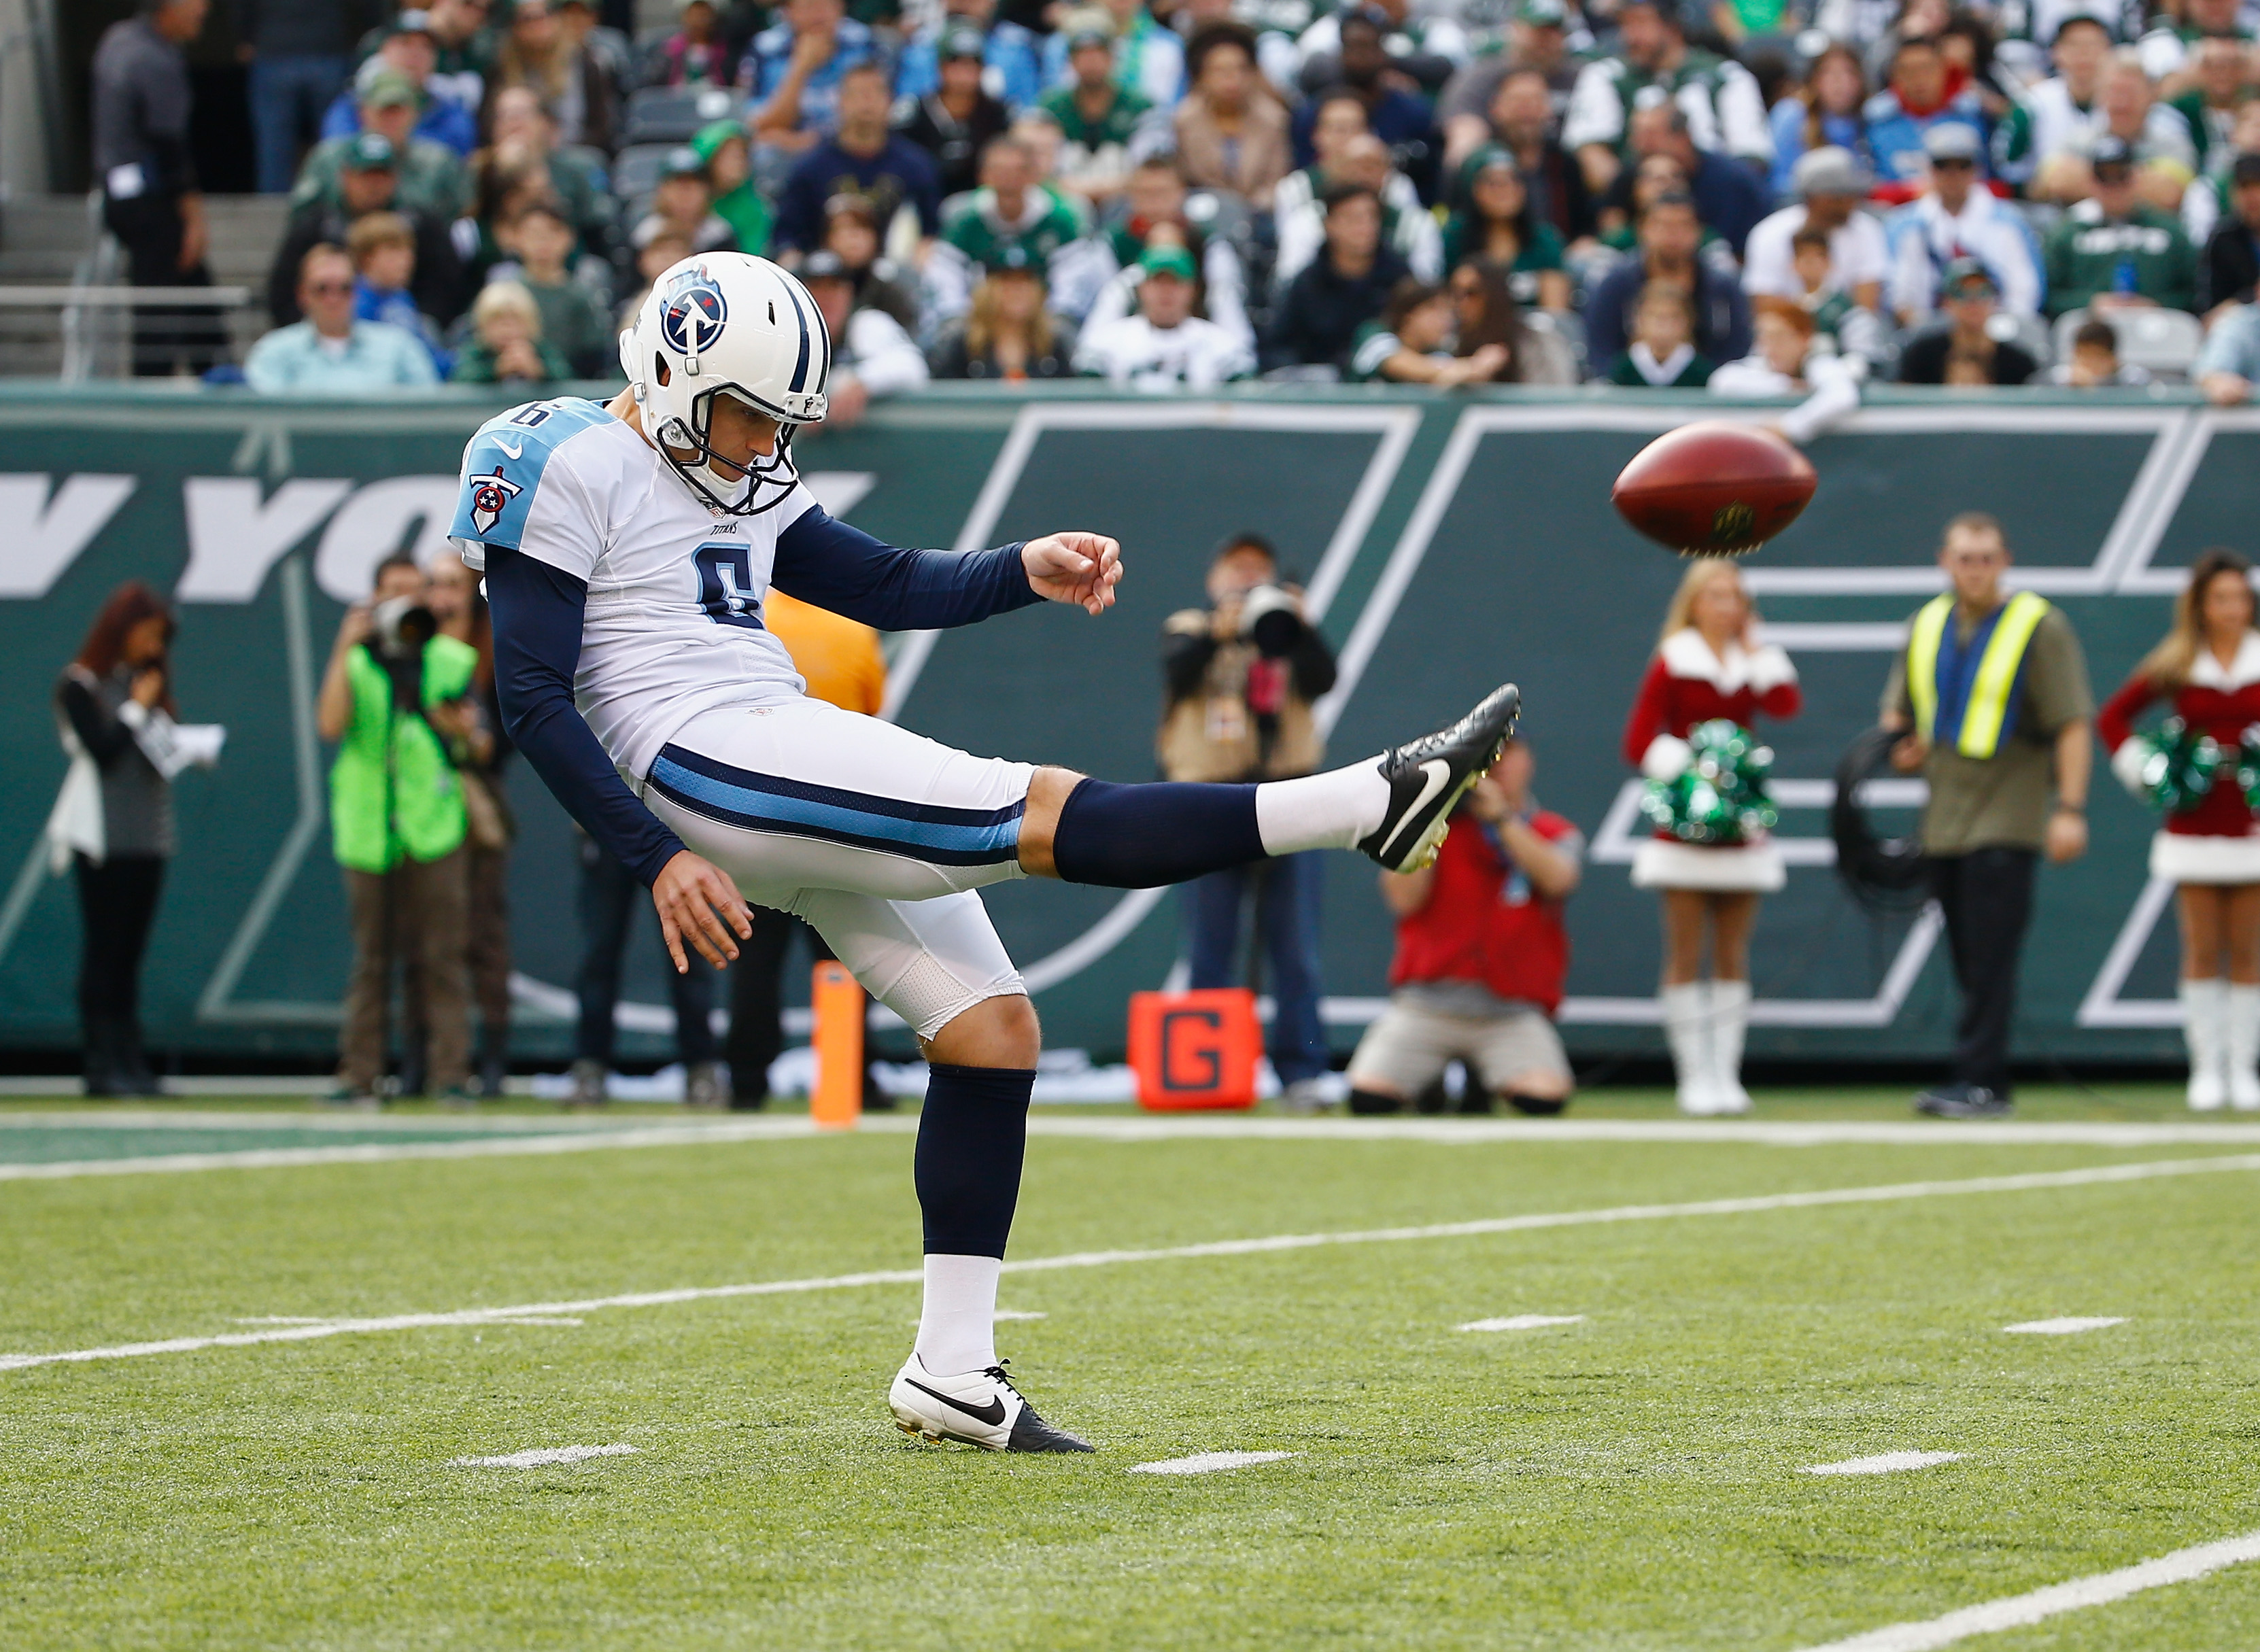 EAST RUTHERFORD, NJ - DECEMBER 13: Brett Kern #6 of the Tennessee Titans punts against the New York Jets during their game at MetLife Stadium on December 13, 2015 in East Rutherford, New Jersey. (Photo by Al Bello/Getty Images)